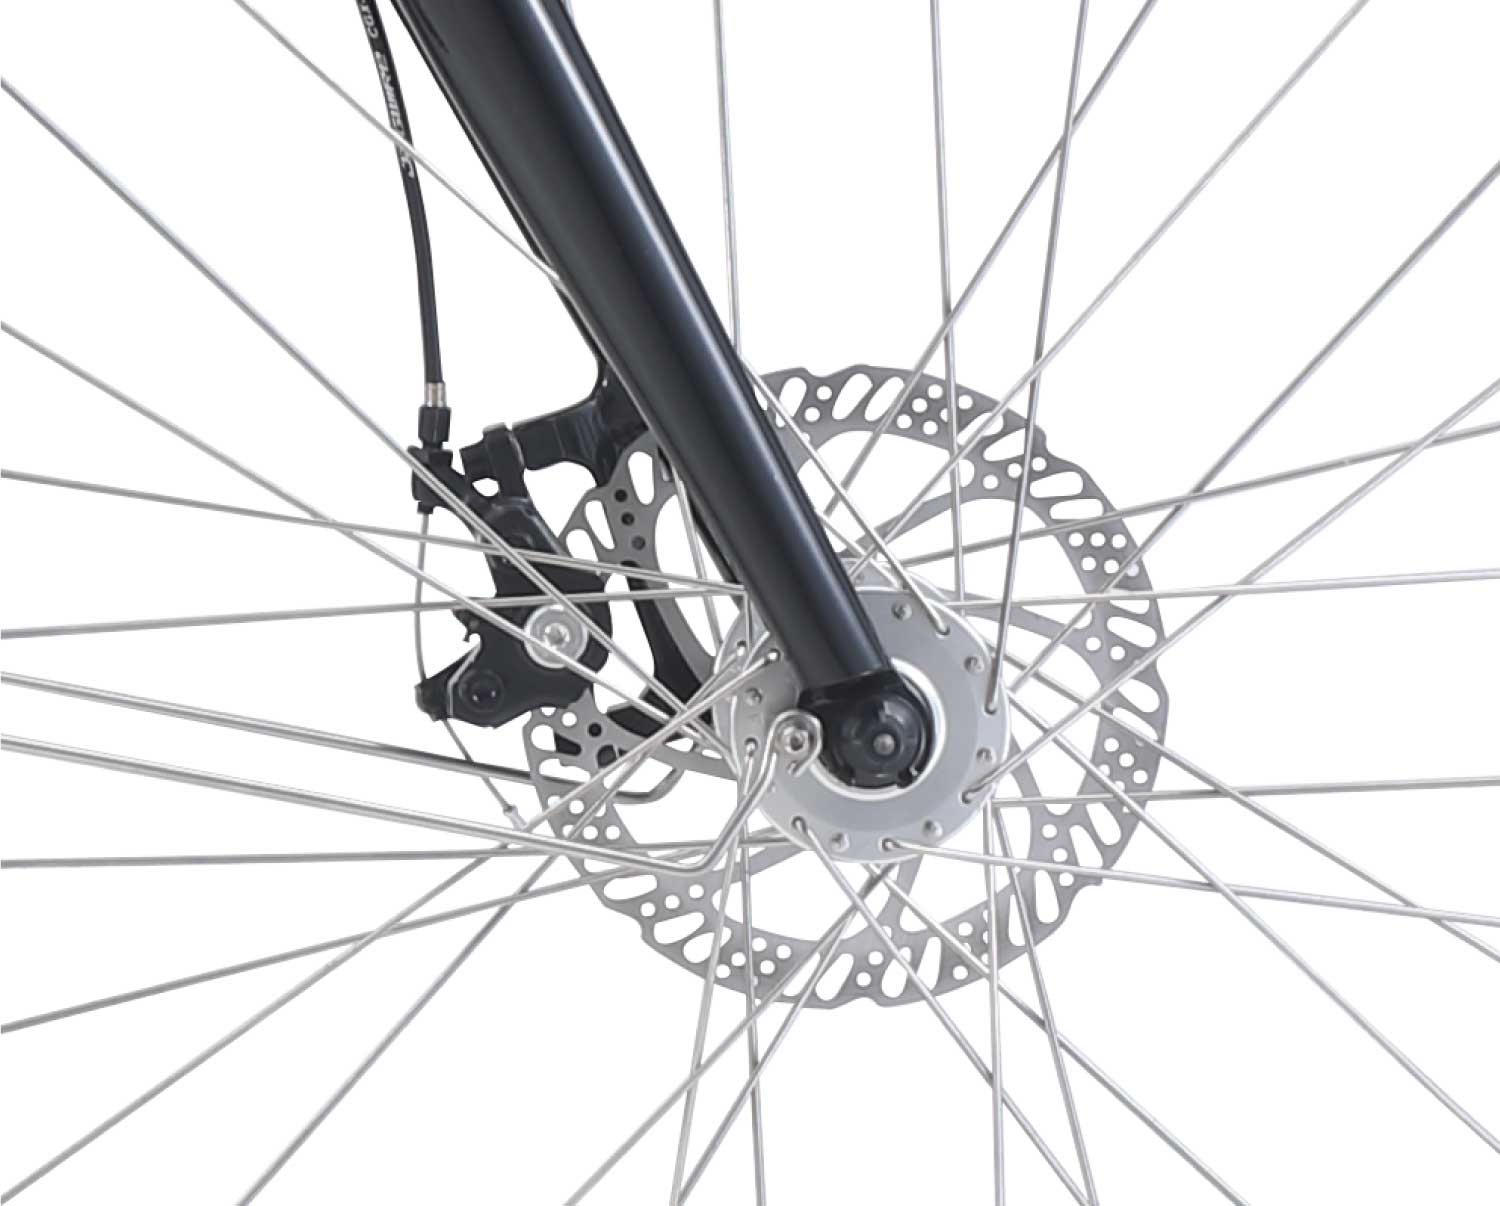 In The Details - Mechanical Disc Brakes